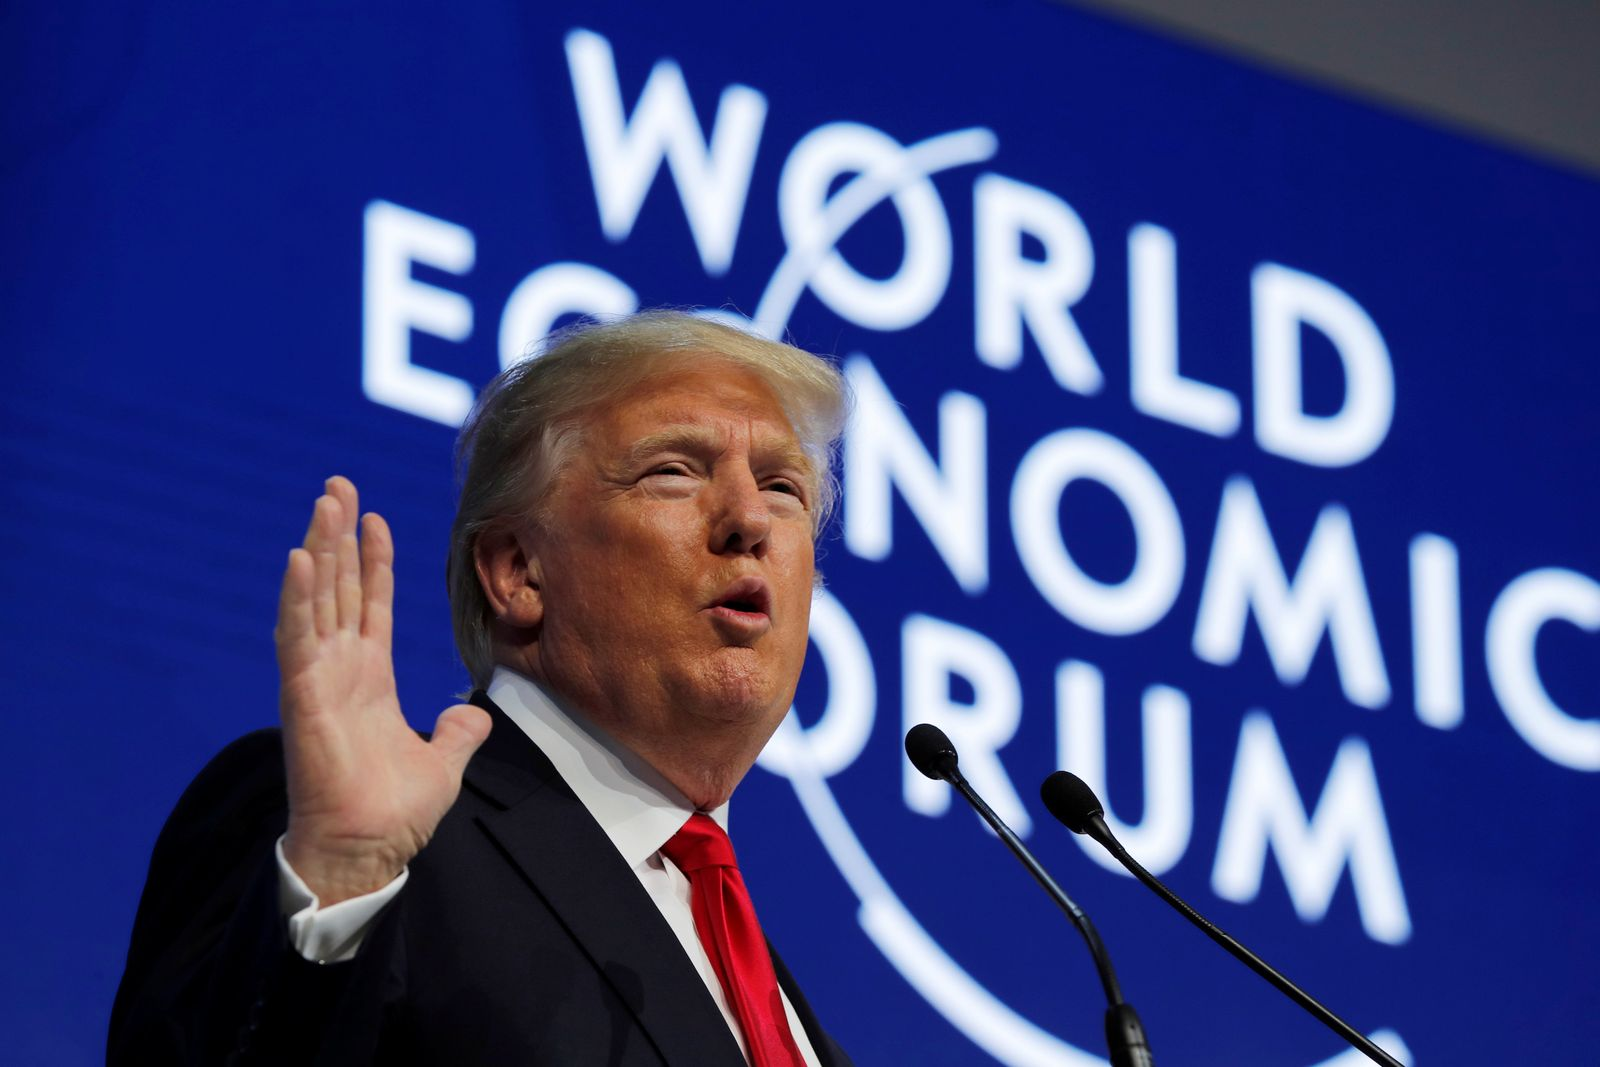 U.S. President Trump speaks at the World Economic Forum annual meeting in Davos